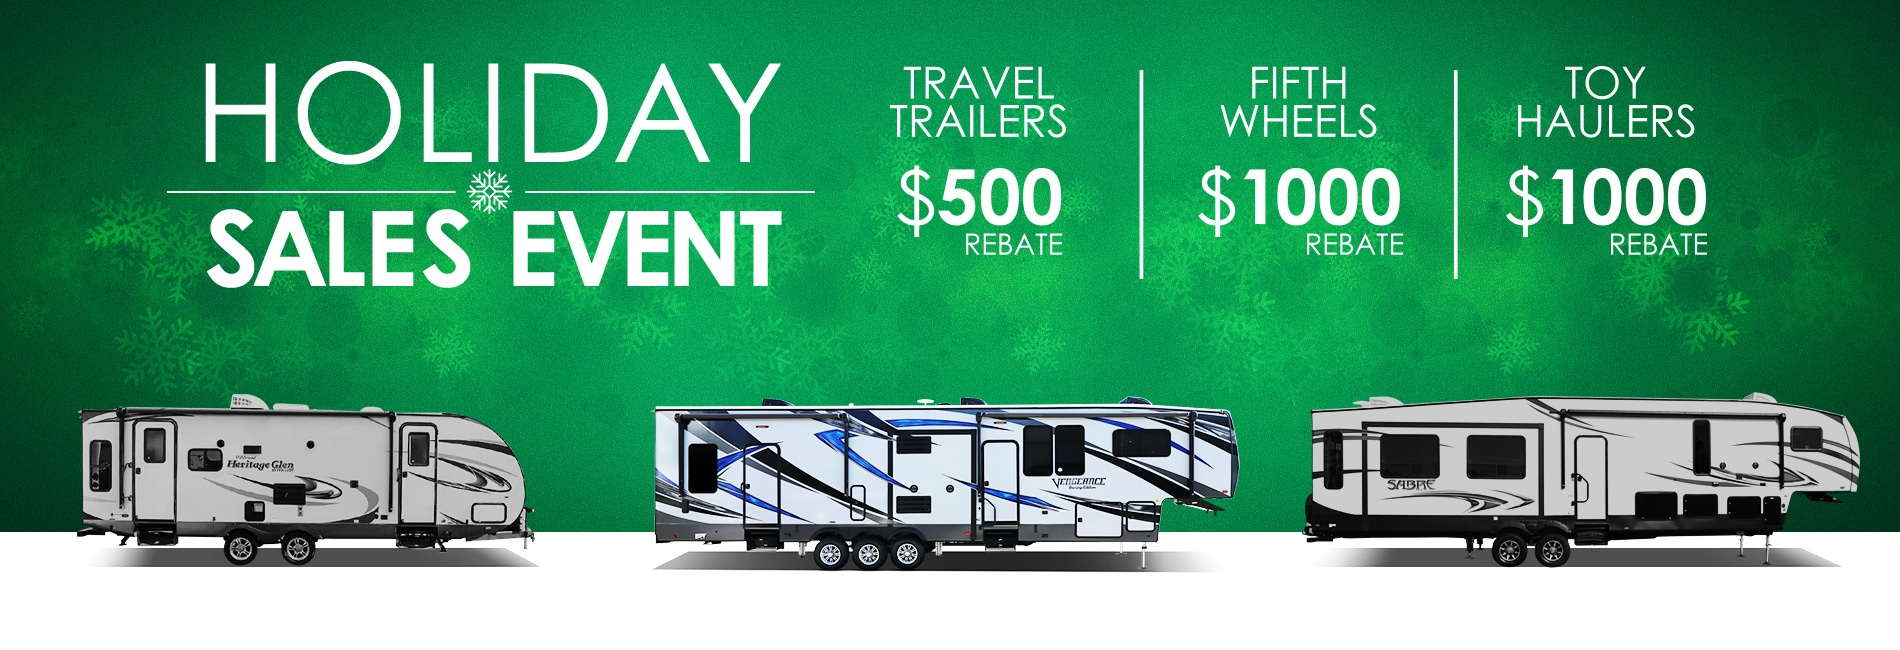 Creative RV - Holiday Sales Event